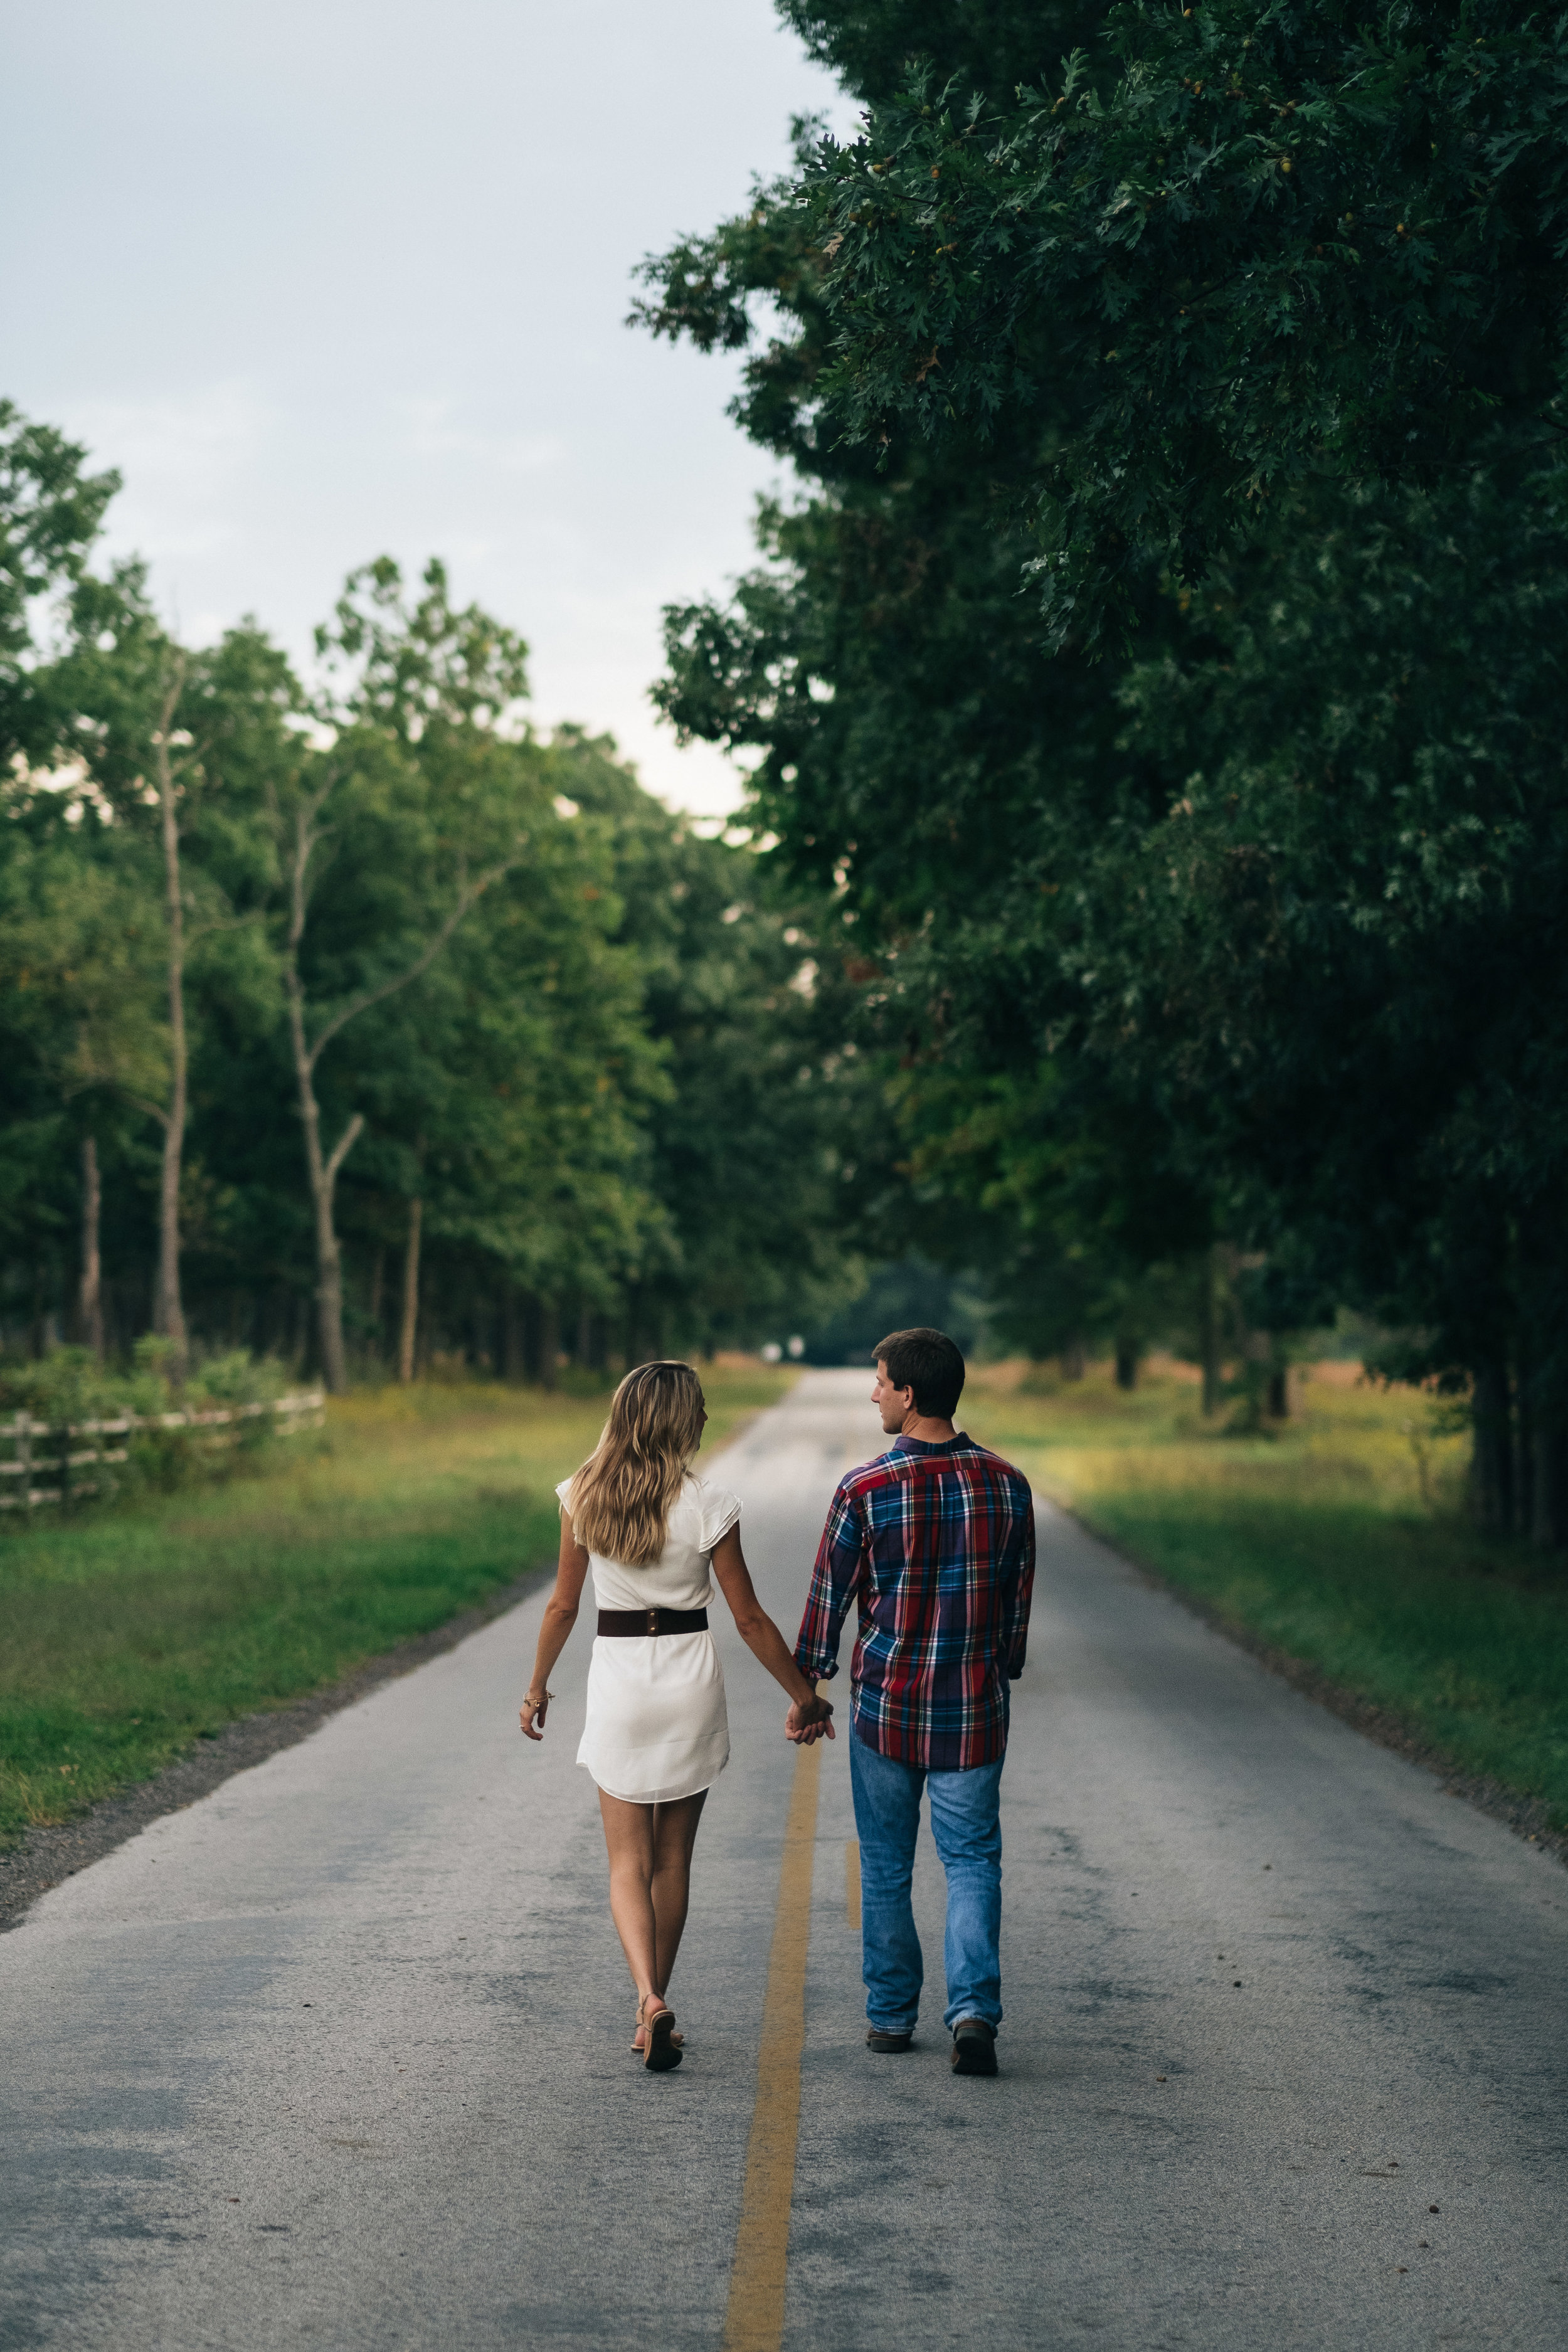 Engagement session at Oak Openings in Swanton, Ohio.